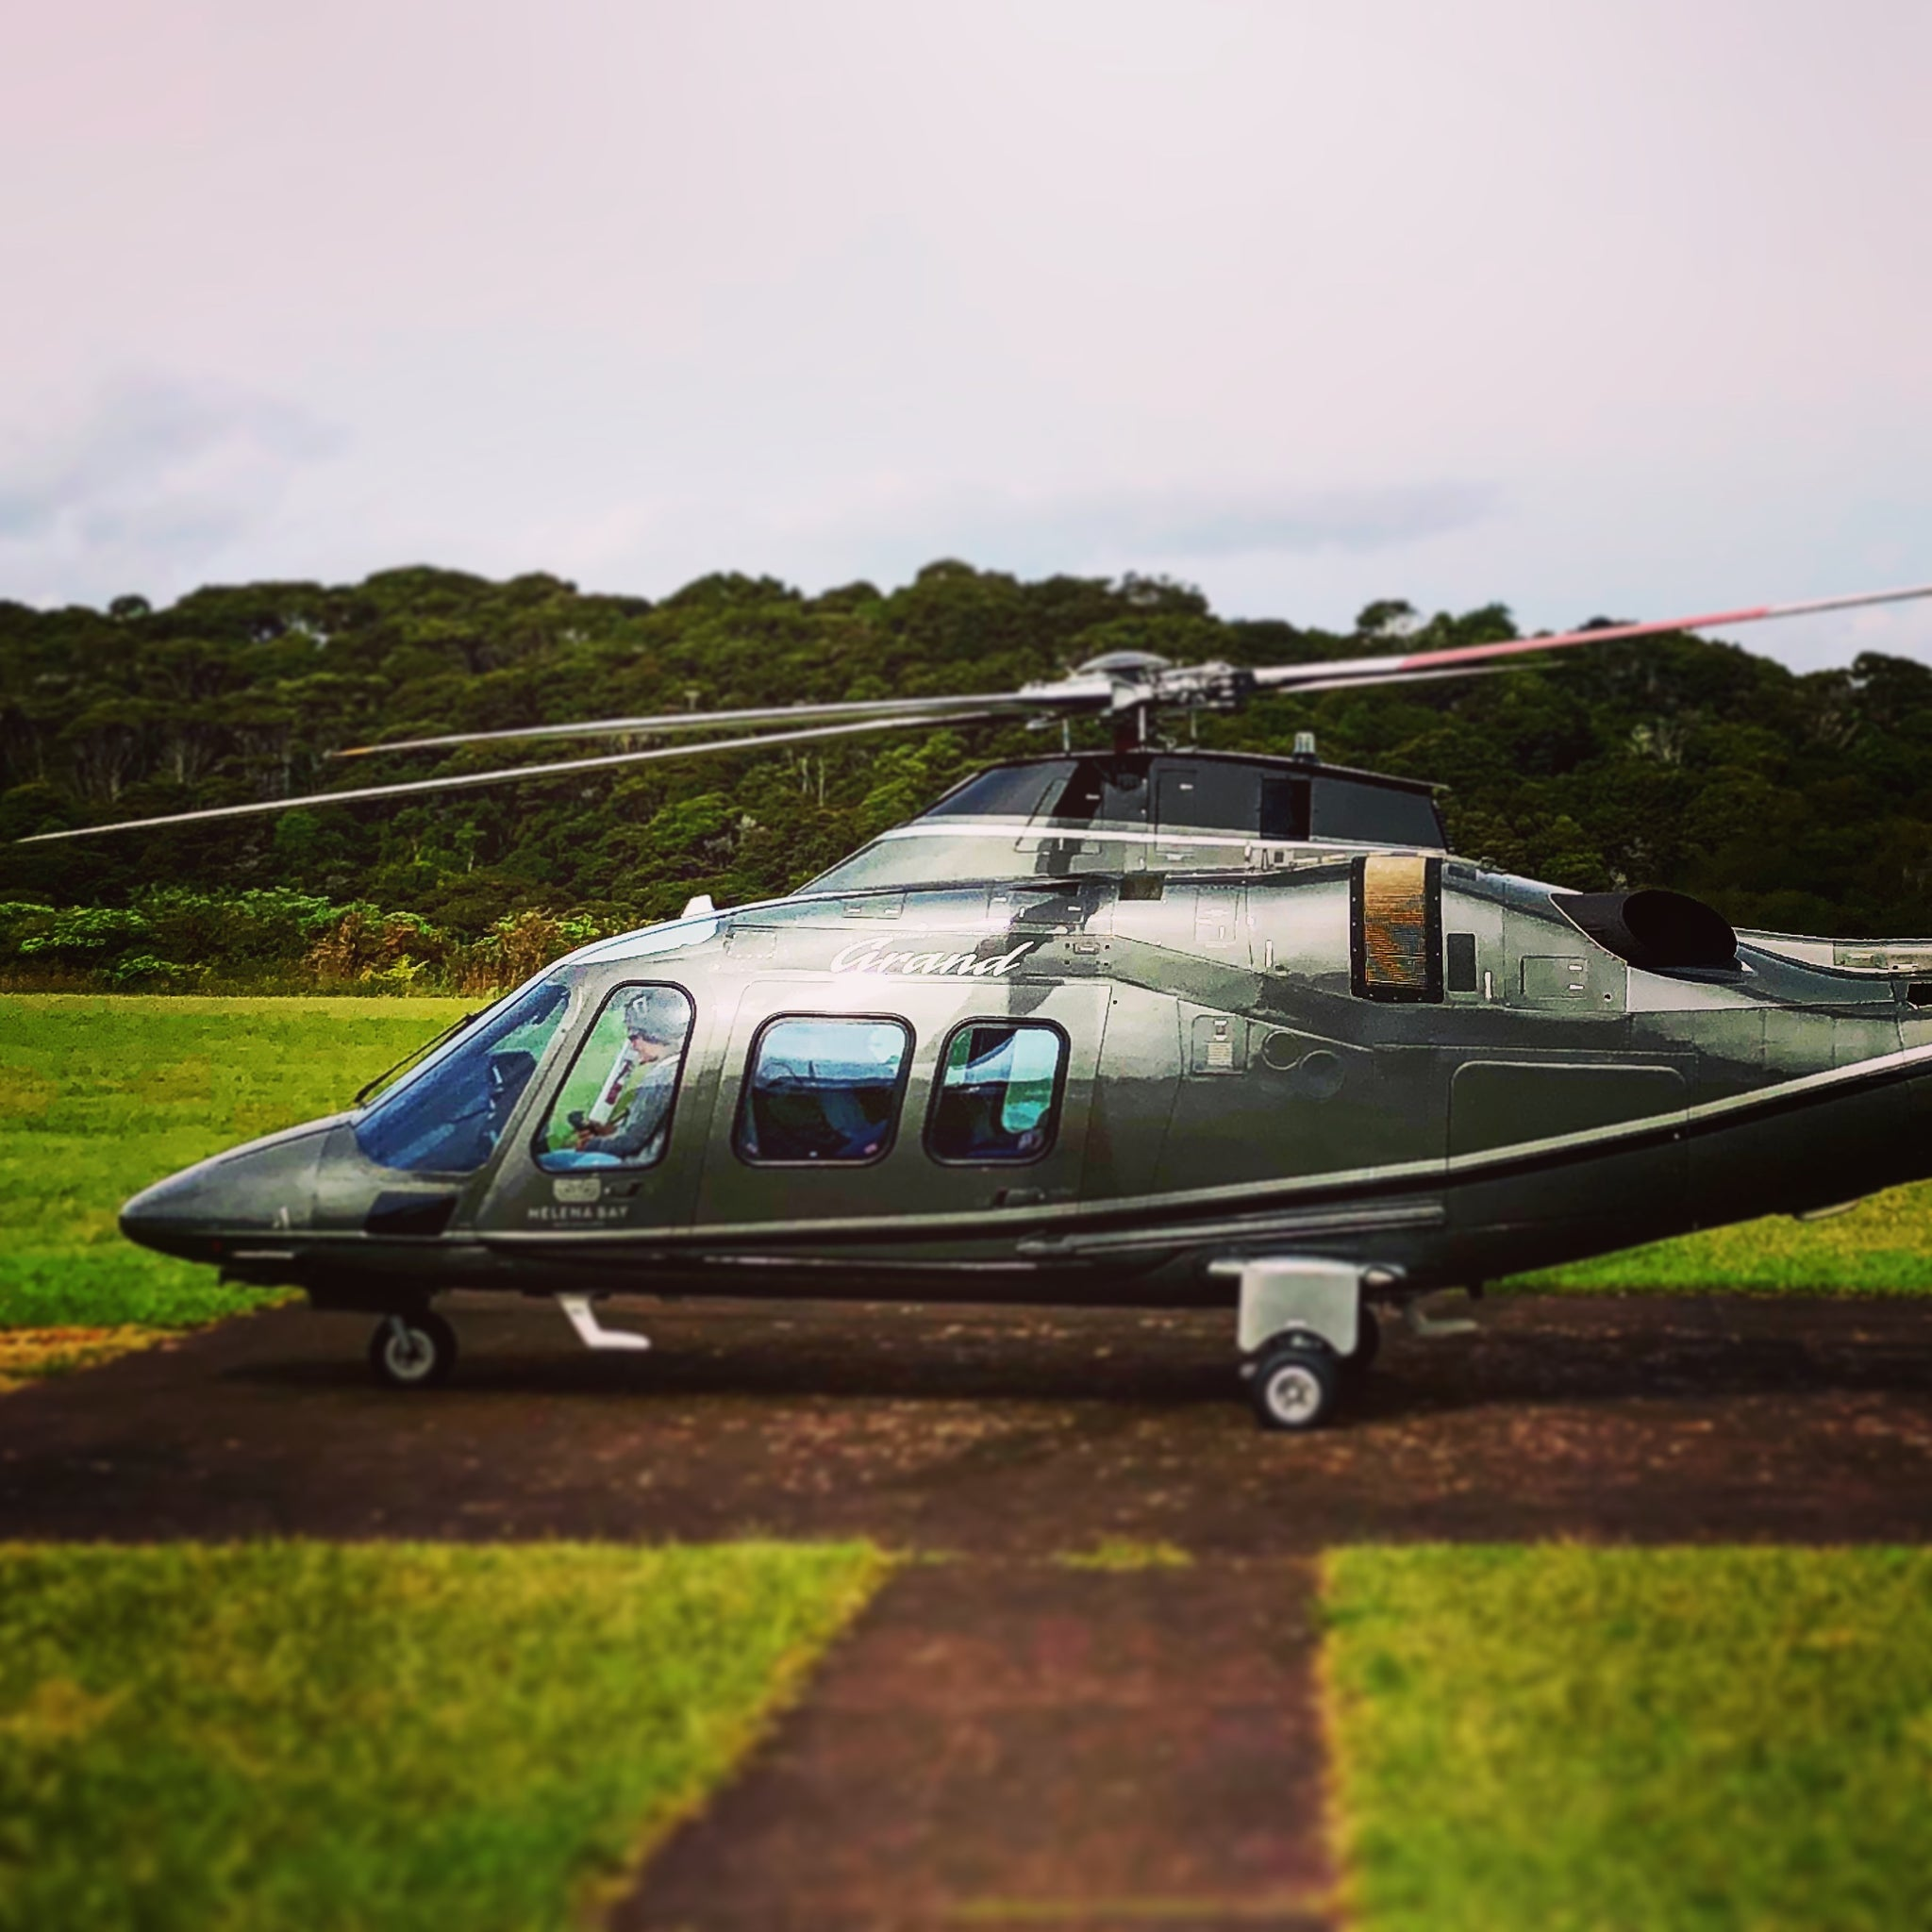 new zealand premium tour luxury private cutomised tailor-made bespoken tours art food wine nature hiking exploring tours waiheke island auckland helitranz helicopter